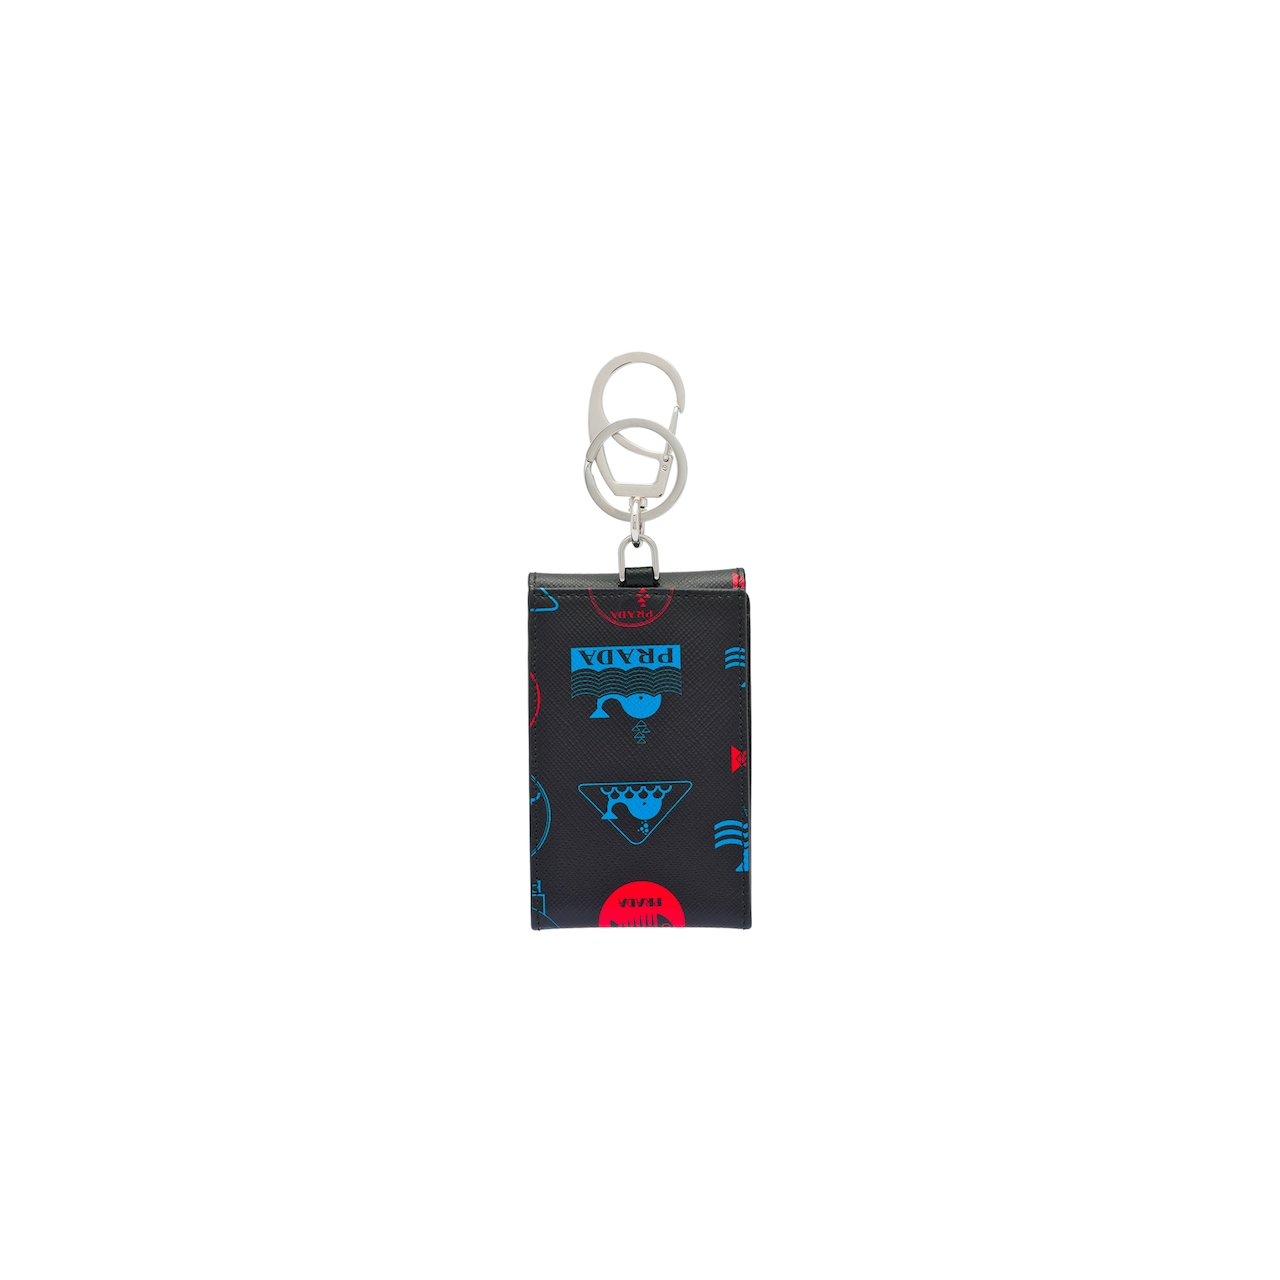 Printed Saffiano leather keychain trick